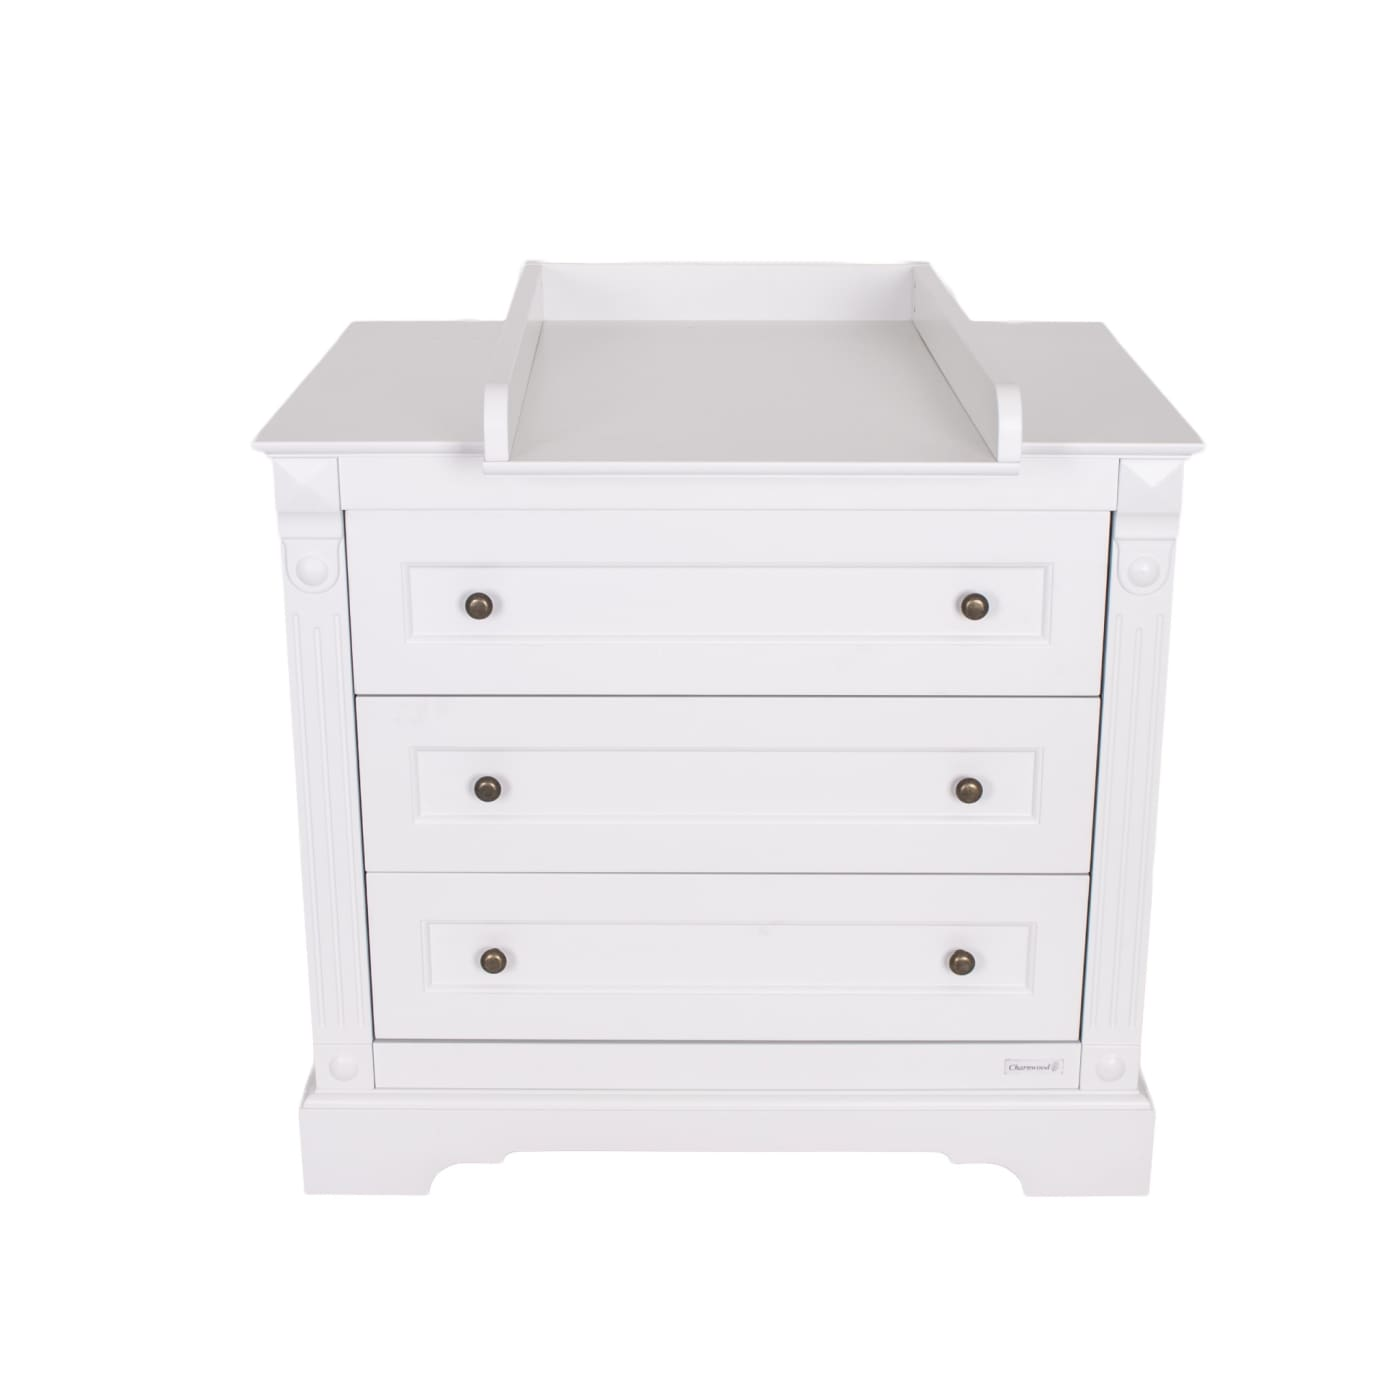 Love N Care Emilia Chest - White - NURSERY & BEDTIME - CHESTS/DRESSERS/TALLBOYS